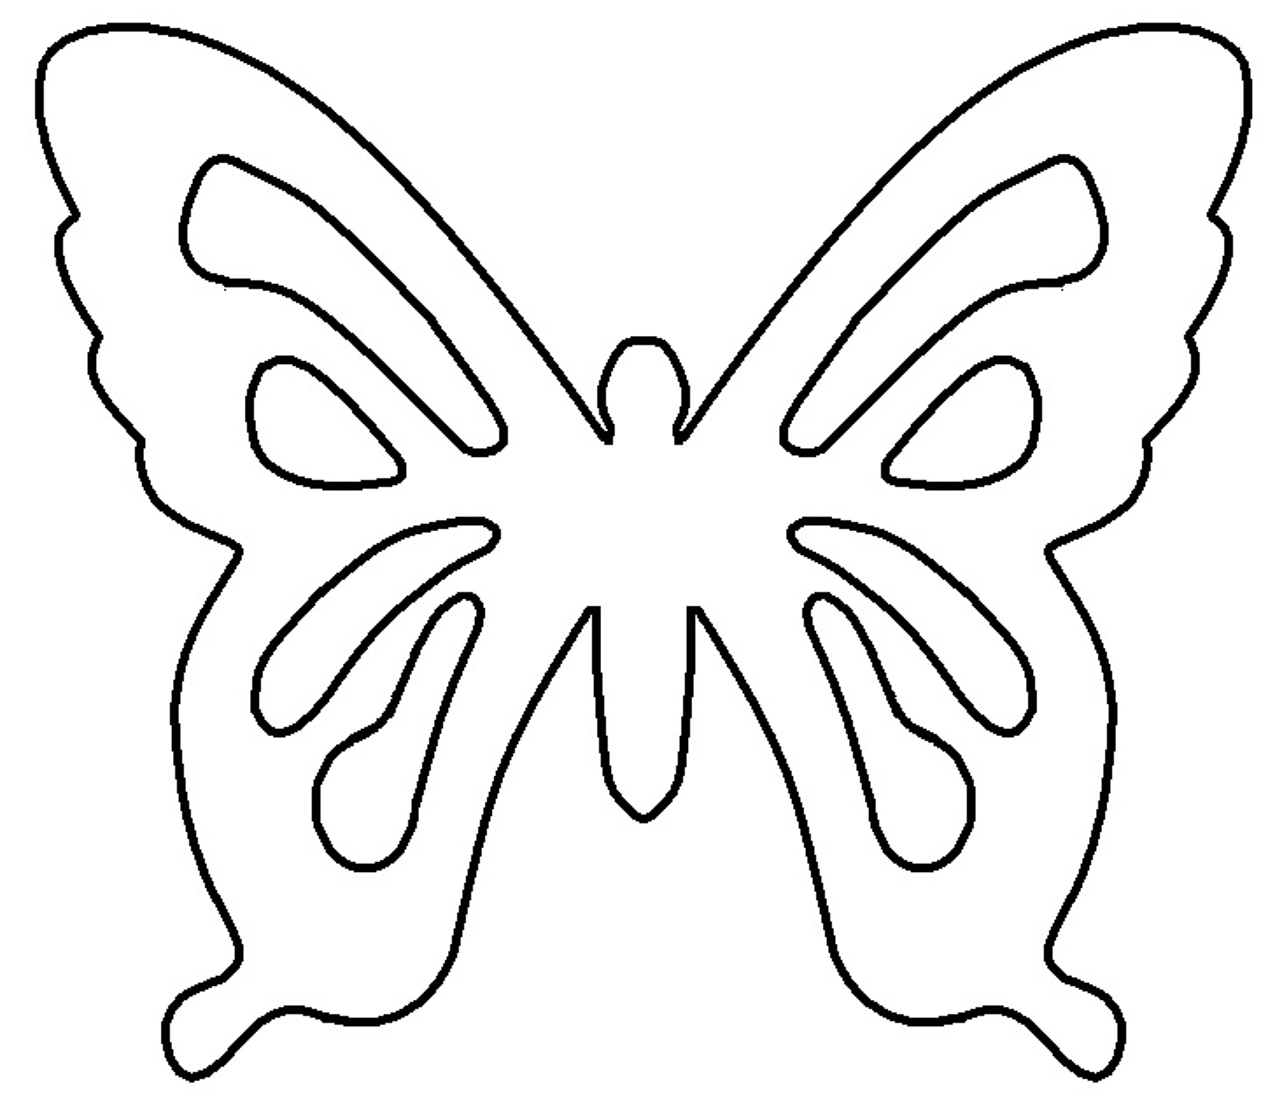 Outline Of A Butterfly - ClipArt Best